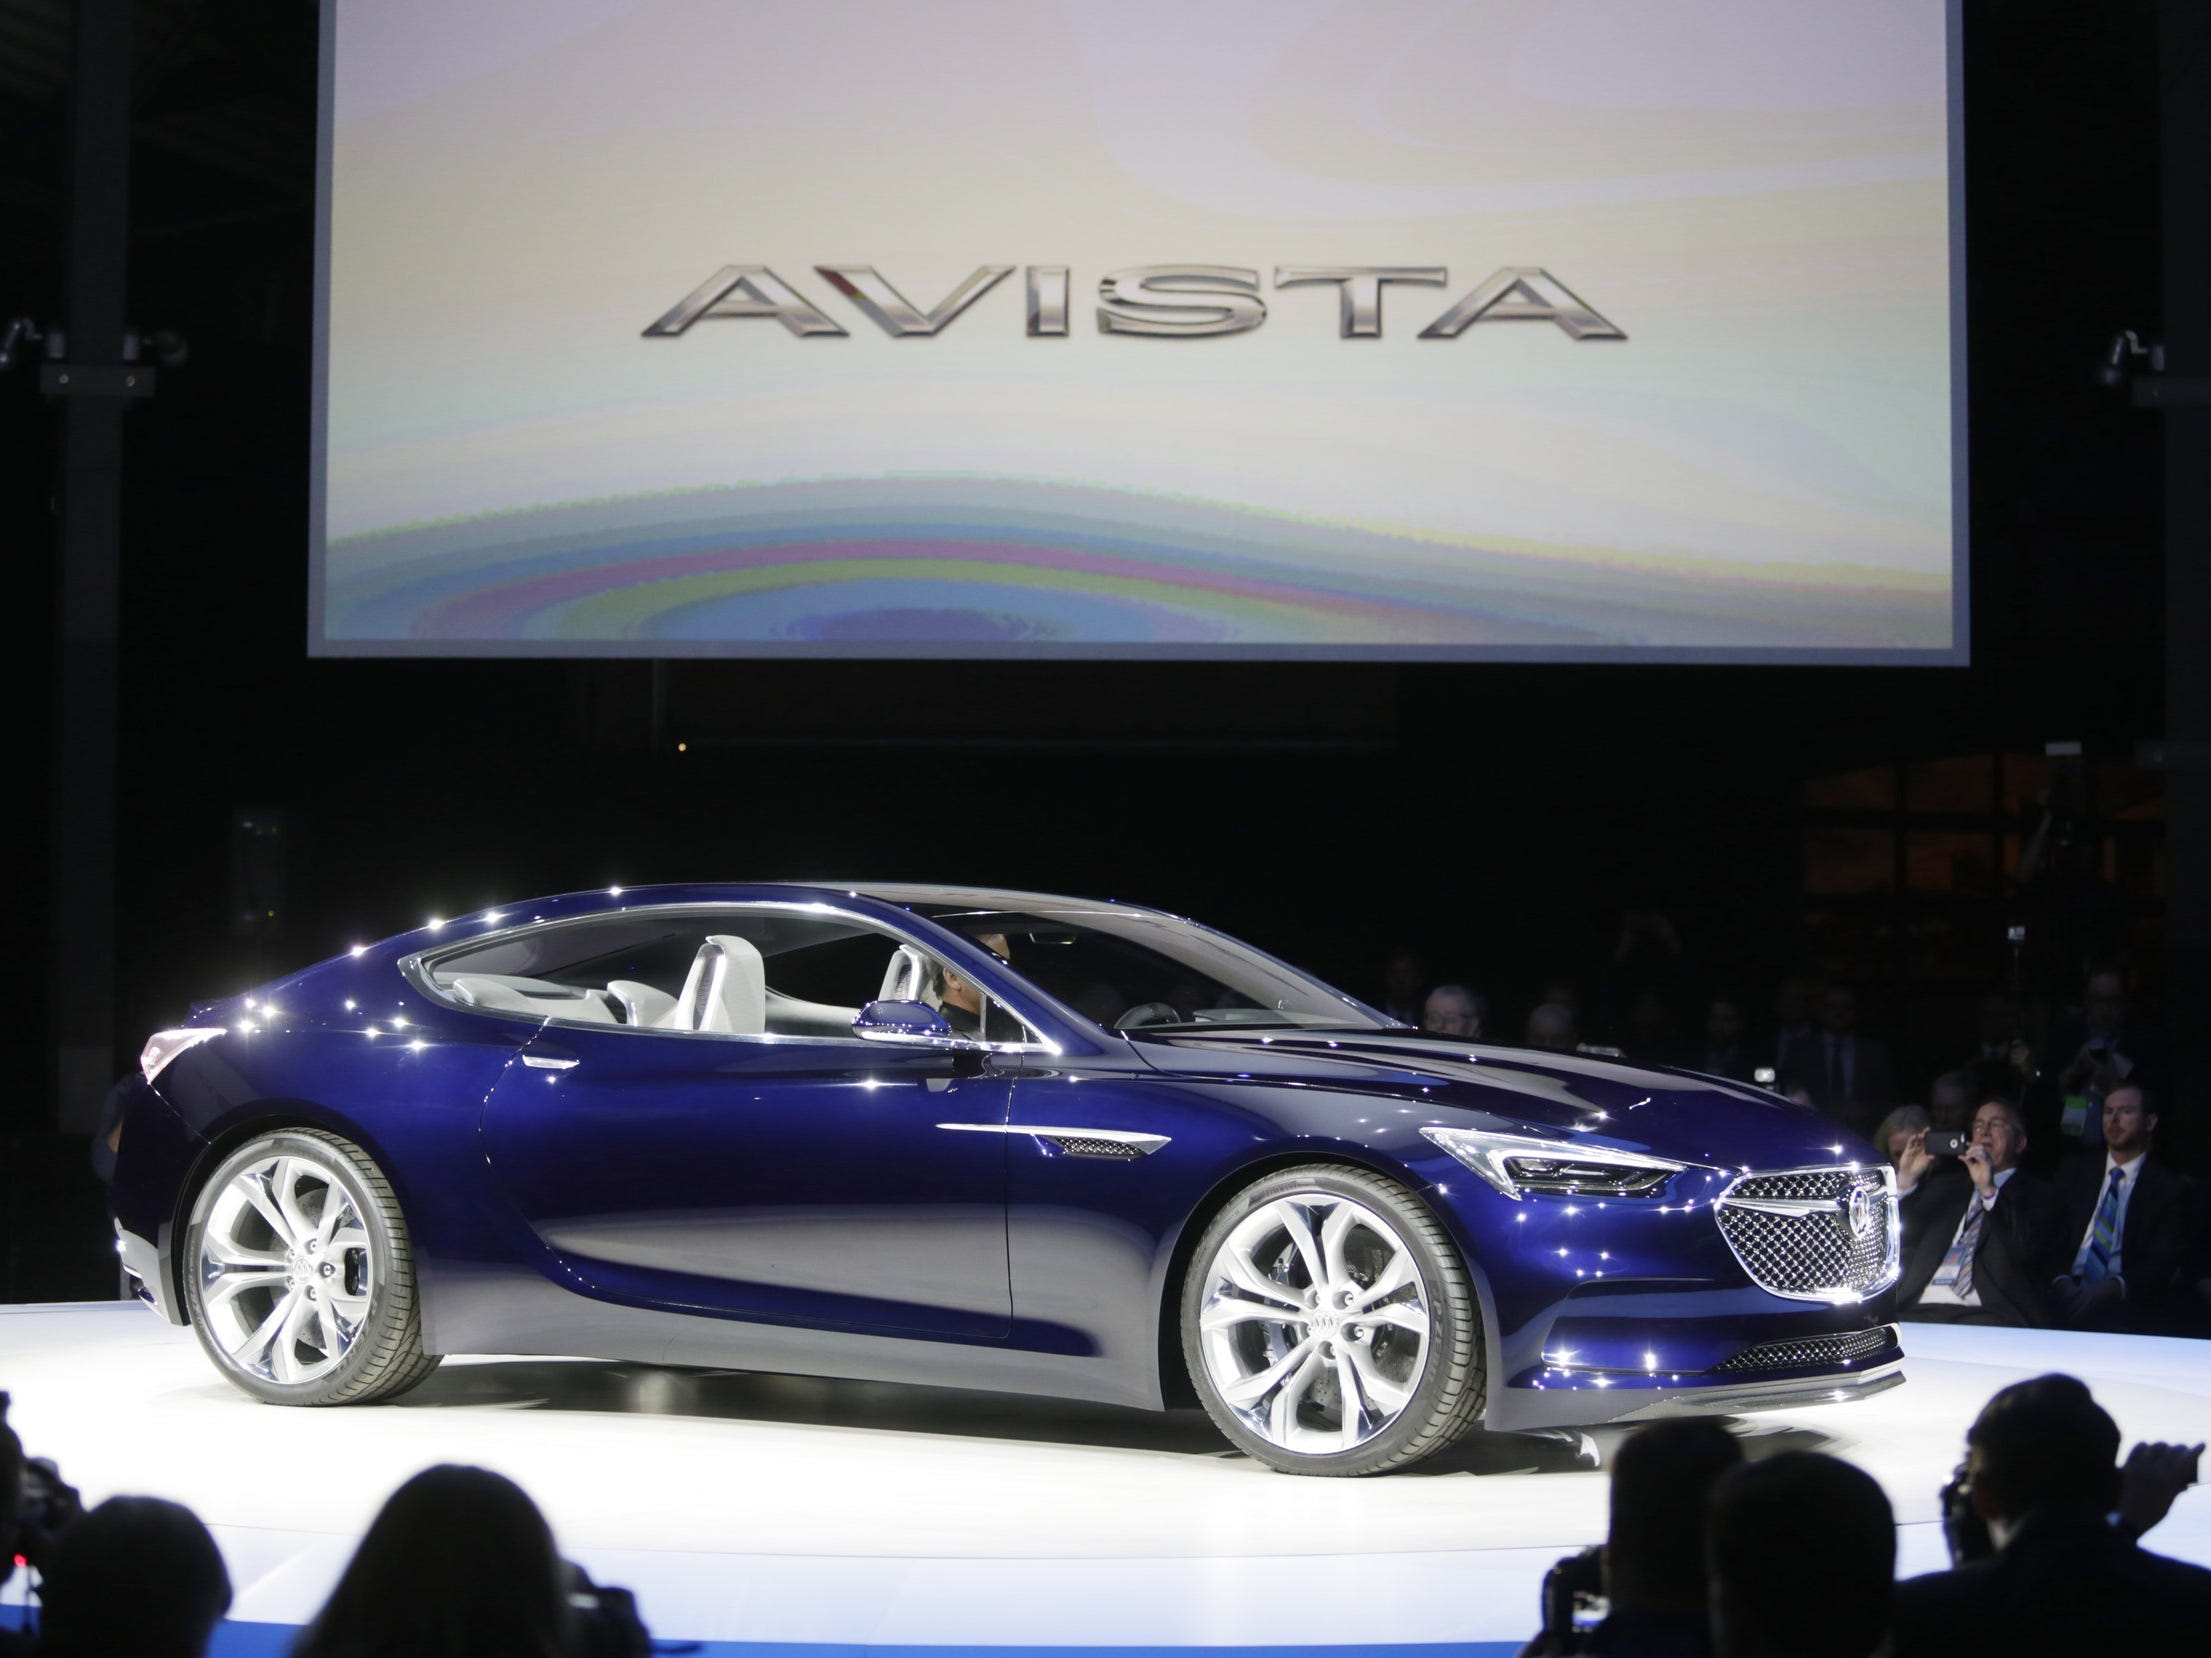 The Avista concept is revealed at the Buick display inside of shed 3 in Detroit's Eastern Market to help kick off the 2016 North American International Auto Show Sunday Jan.10, 2016.